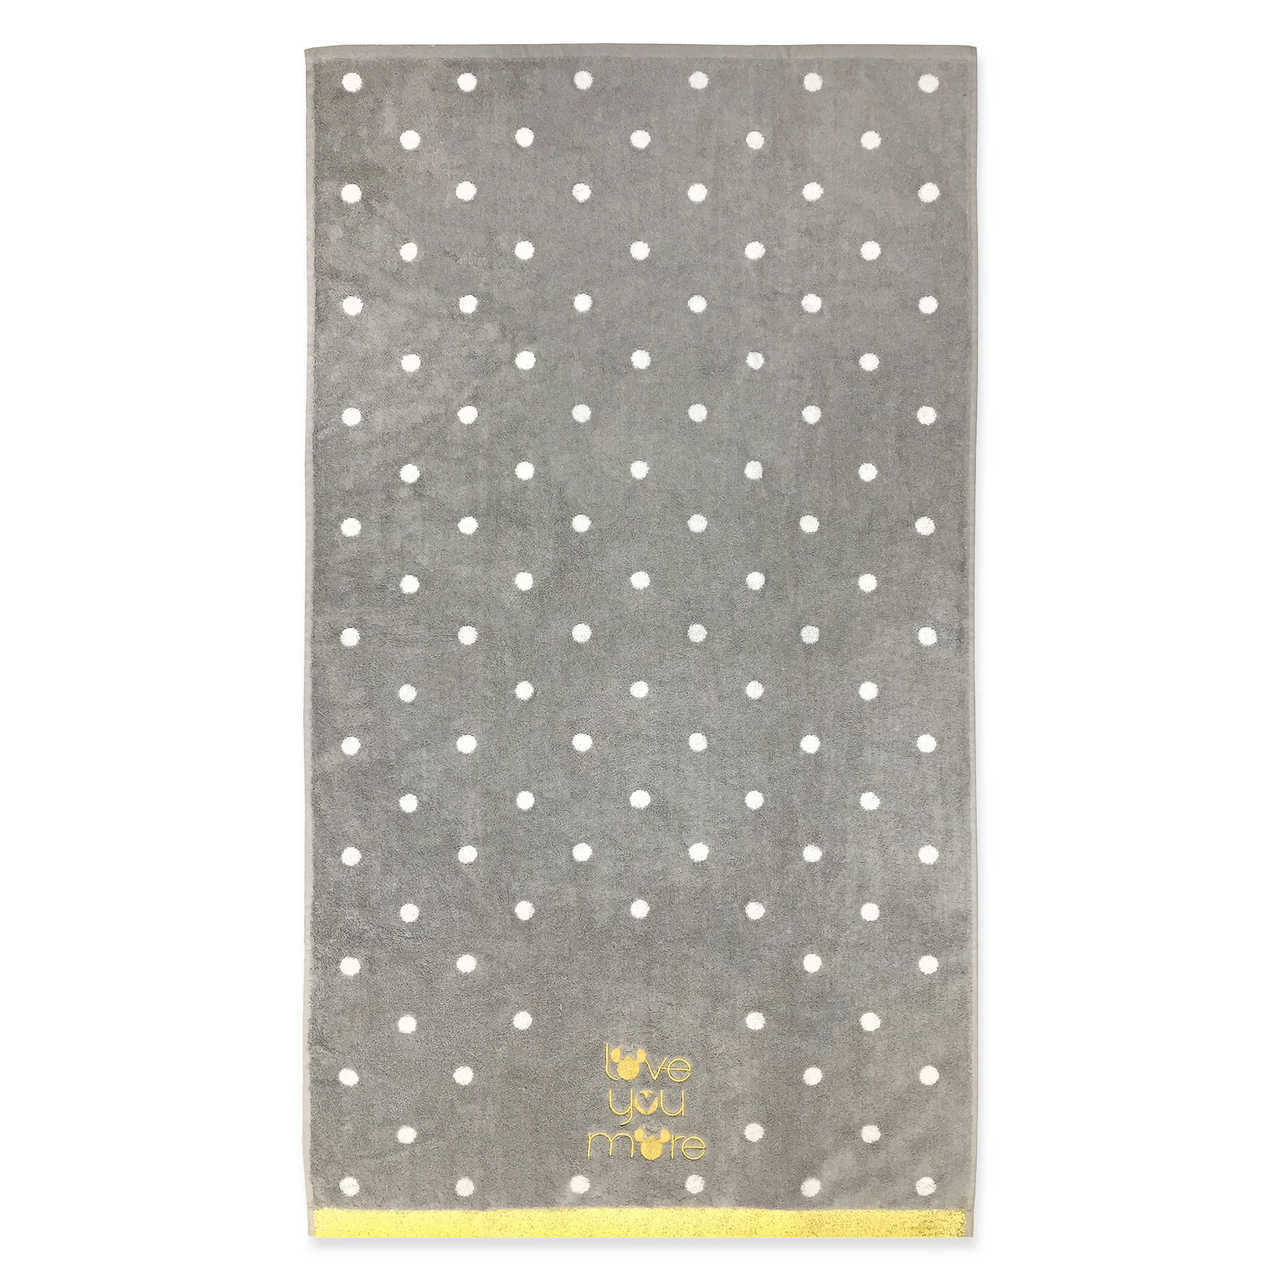 Disney Minnie Mouse 'Love You More' Bath Towel